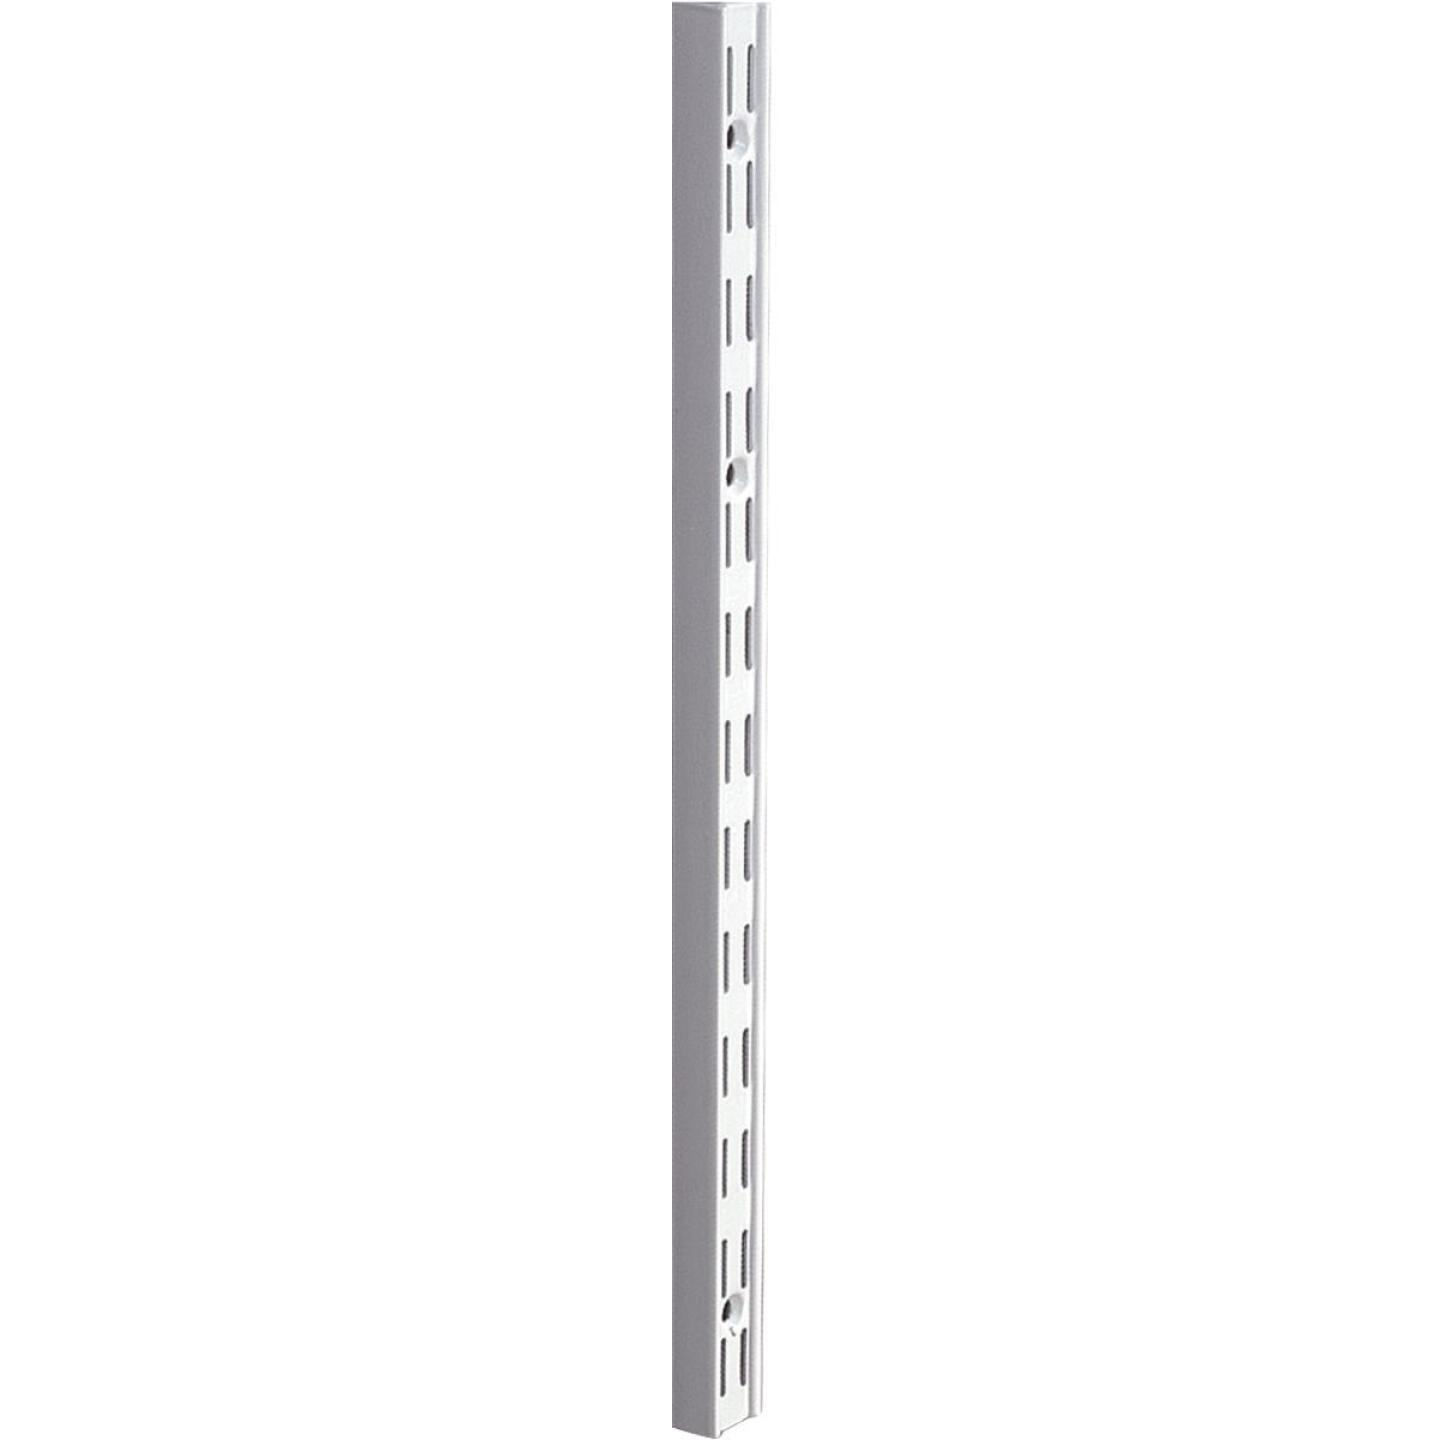 Knape & Vogt 82 Series 39 In. Titanium Steel Heavy-Duty Double-Slot Shelf Standard Image 1